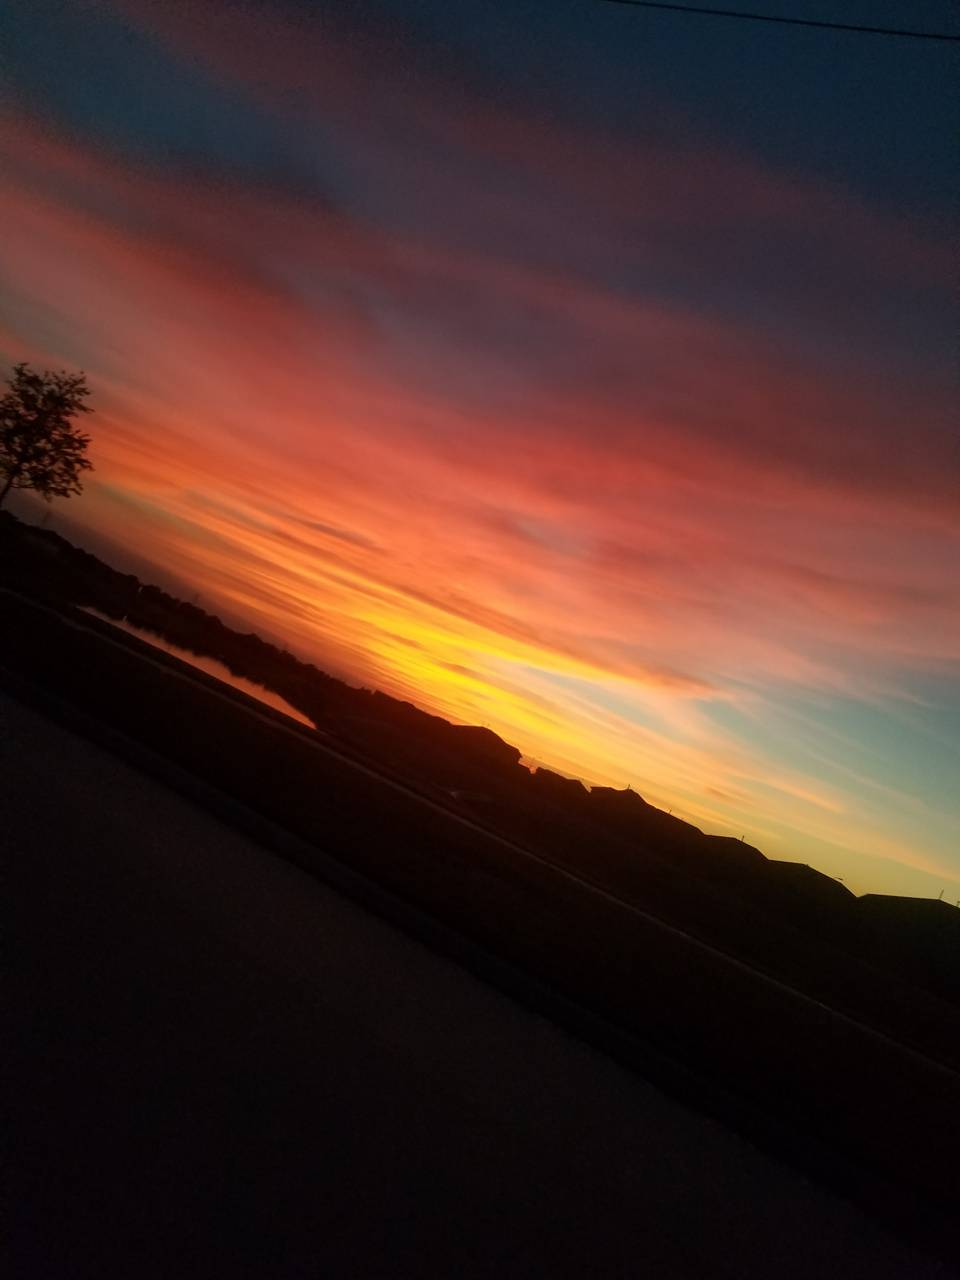 Drive of the dawn